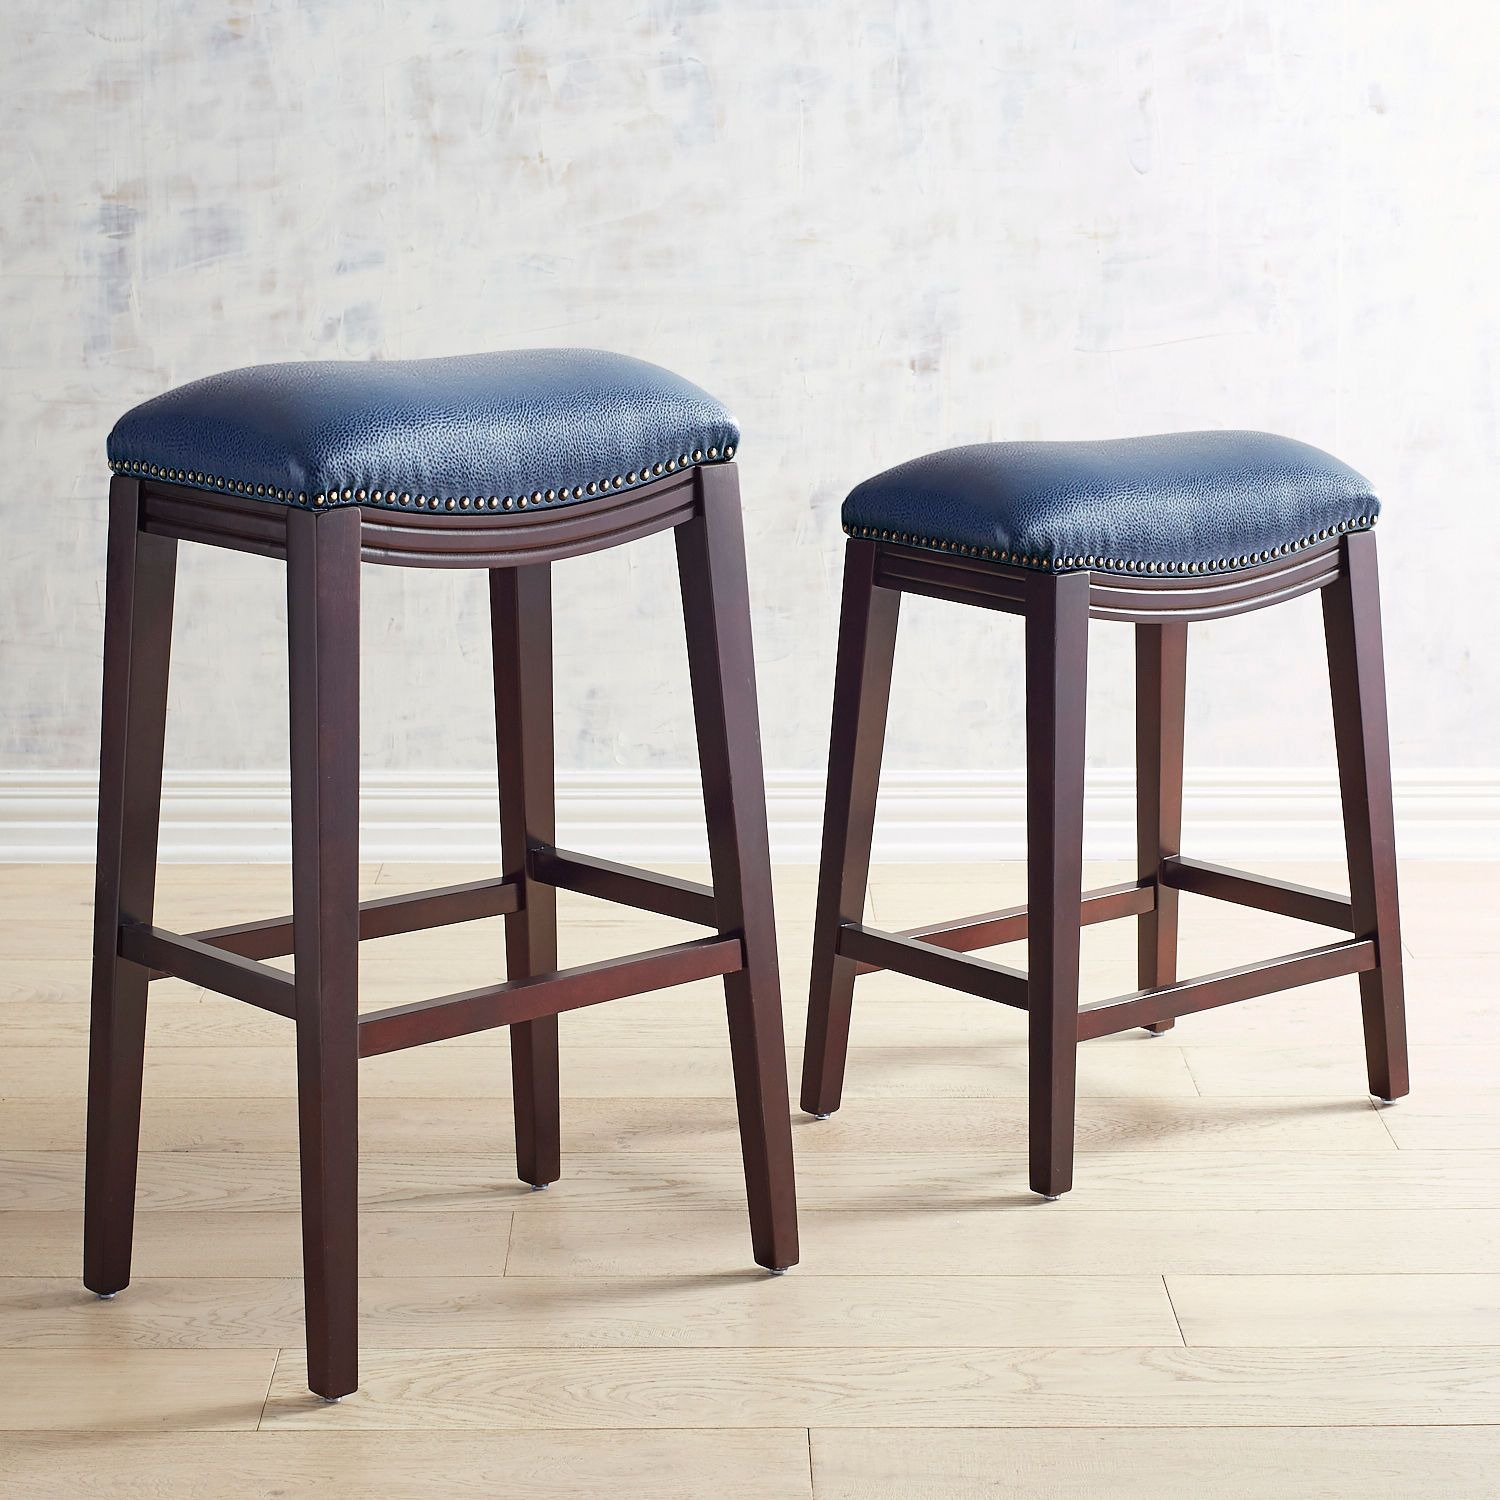 Halsted Navy Blue Counter Bar Stool With Espresso Legs Pier 1 Imports Bar Stools Blue Bar Stools Backless Bar Stools